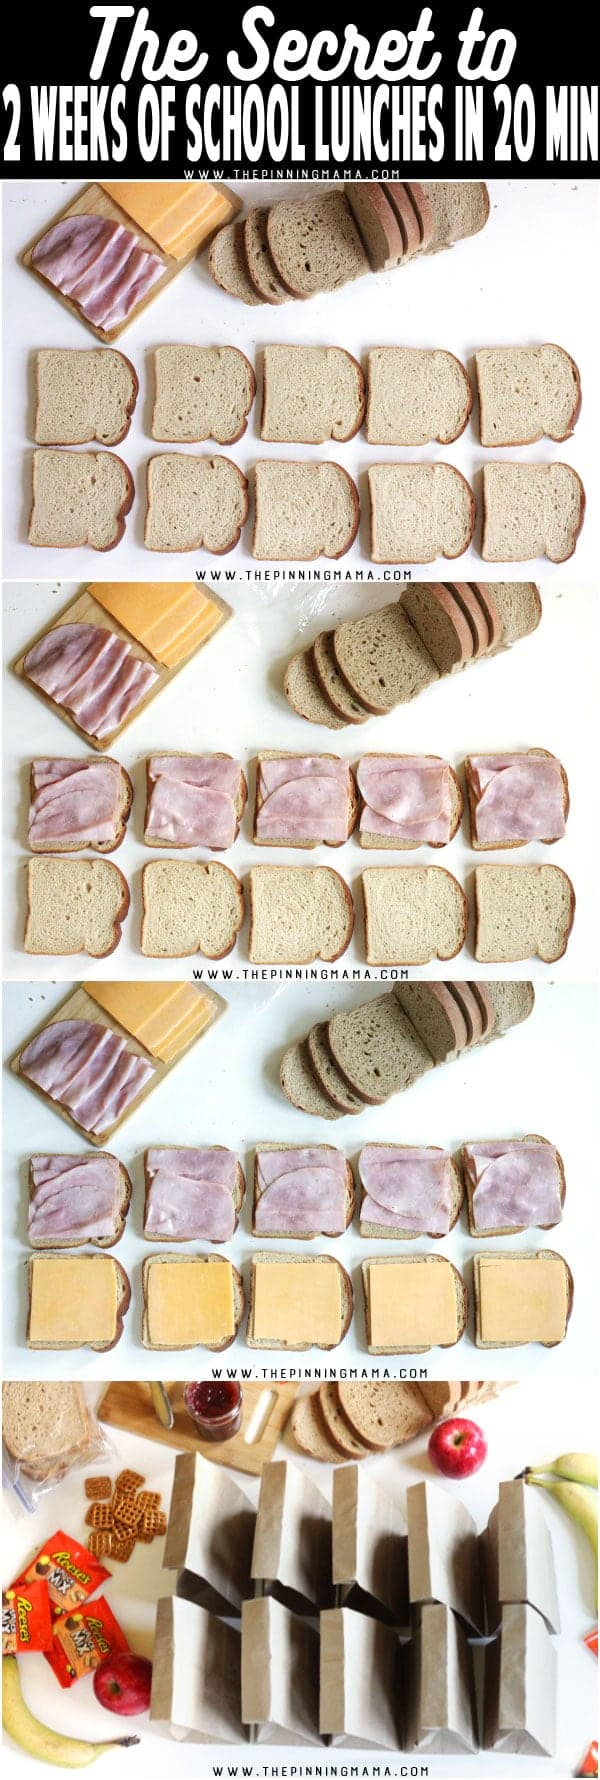 How to make freezer sandwiches - Great for prepping a weeks worth of lunches at a time to save time and stress in the mornings! I can do this for school and work lunches!